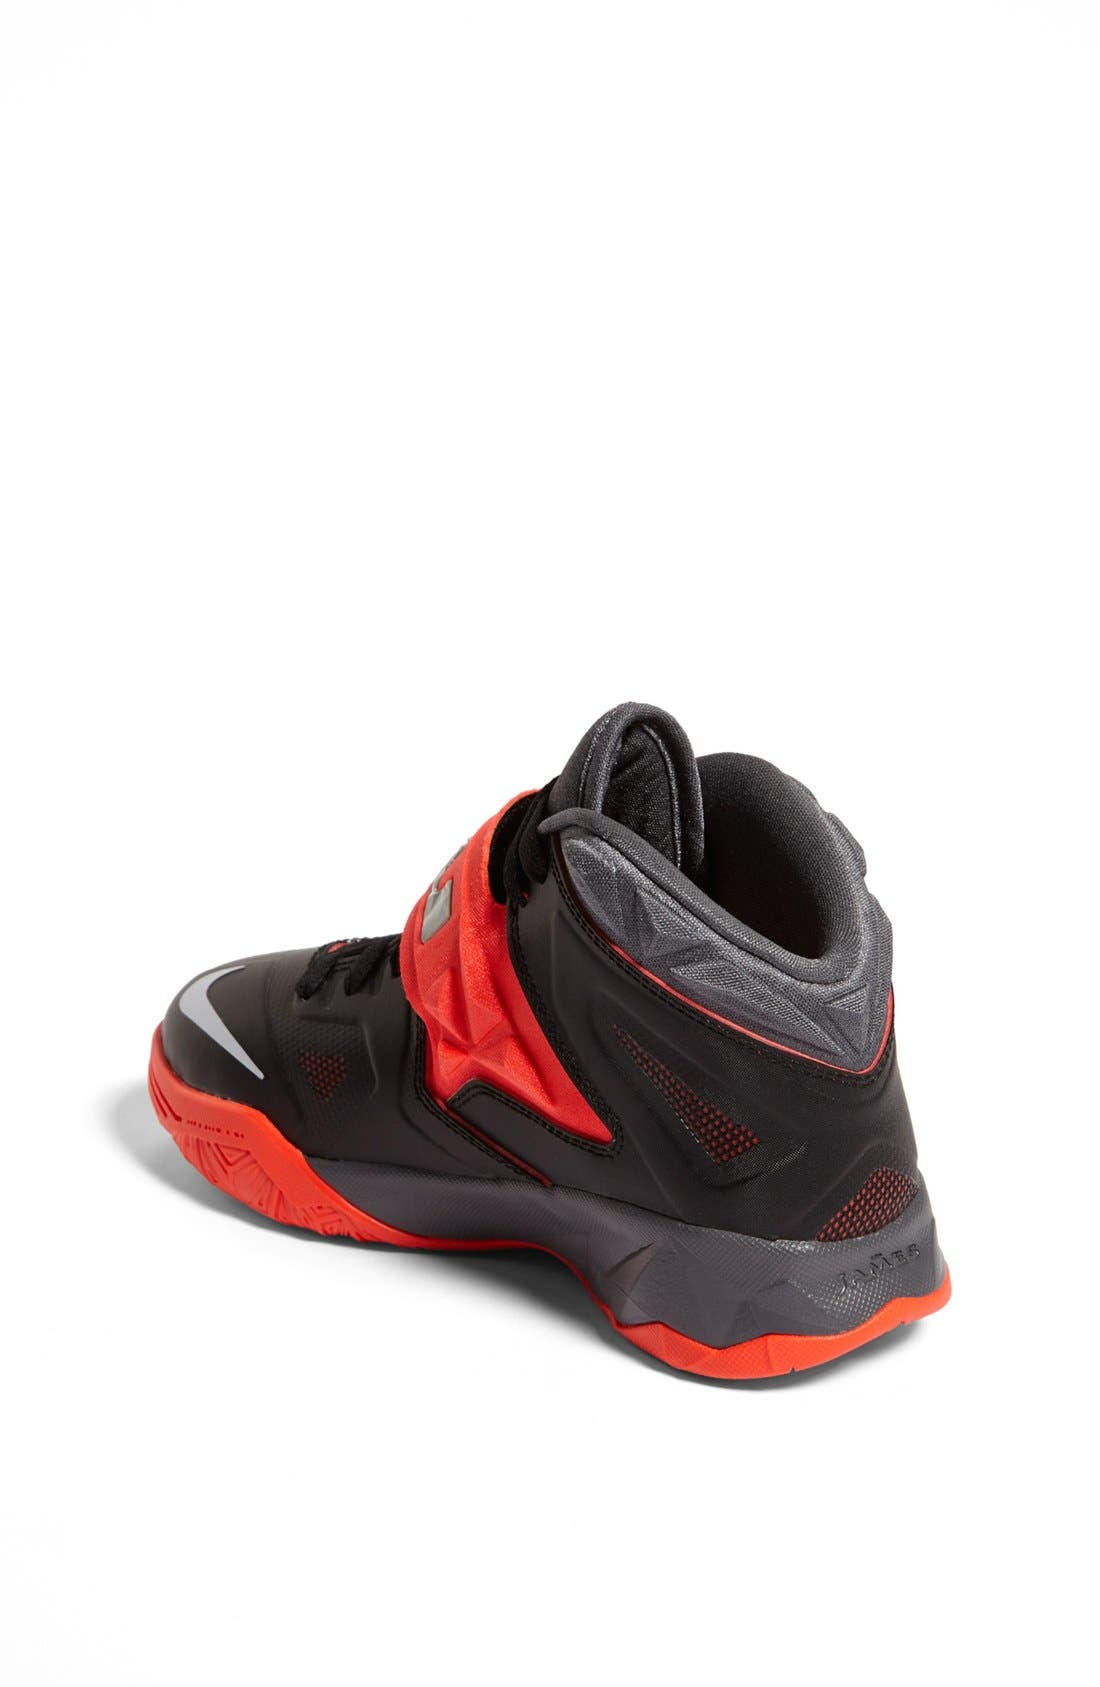 Alternate Image 2  - Nike 'LeBron Zoom Soldier VII' Basketball Shoe (Big Kid)